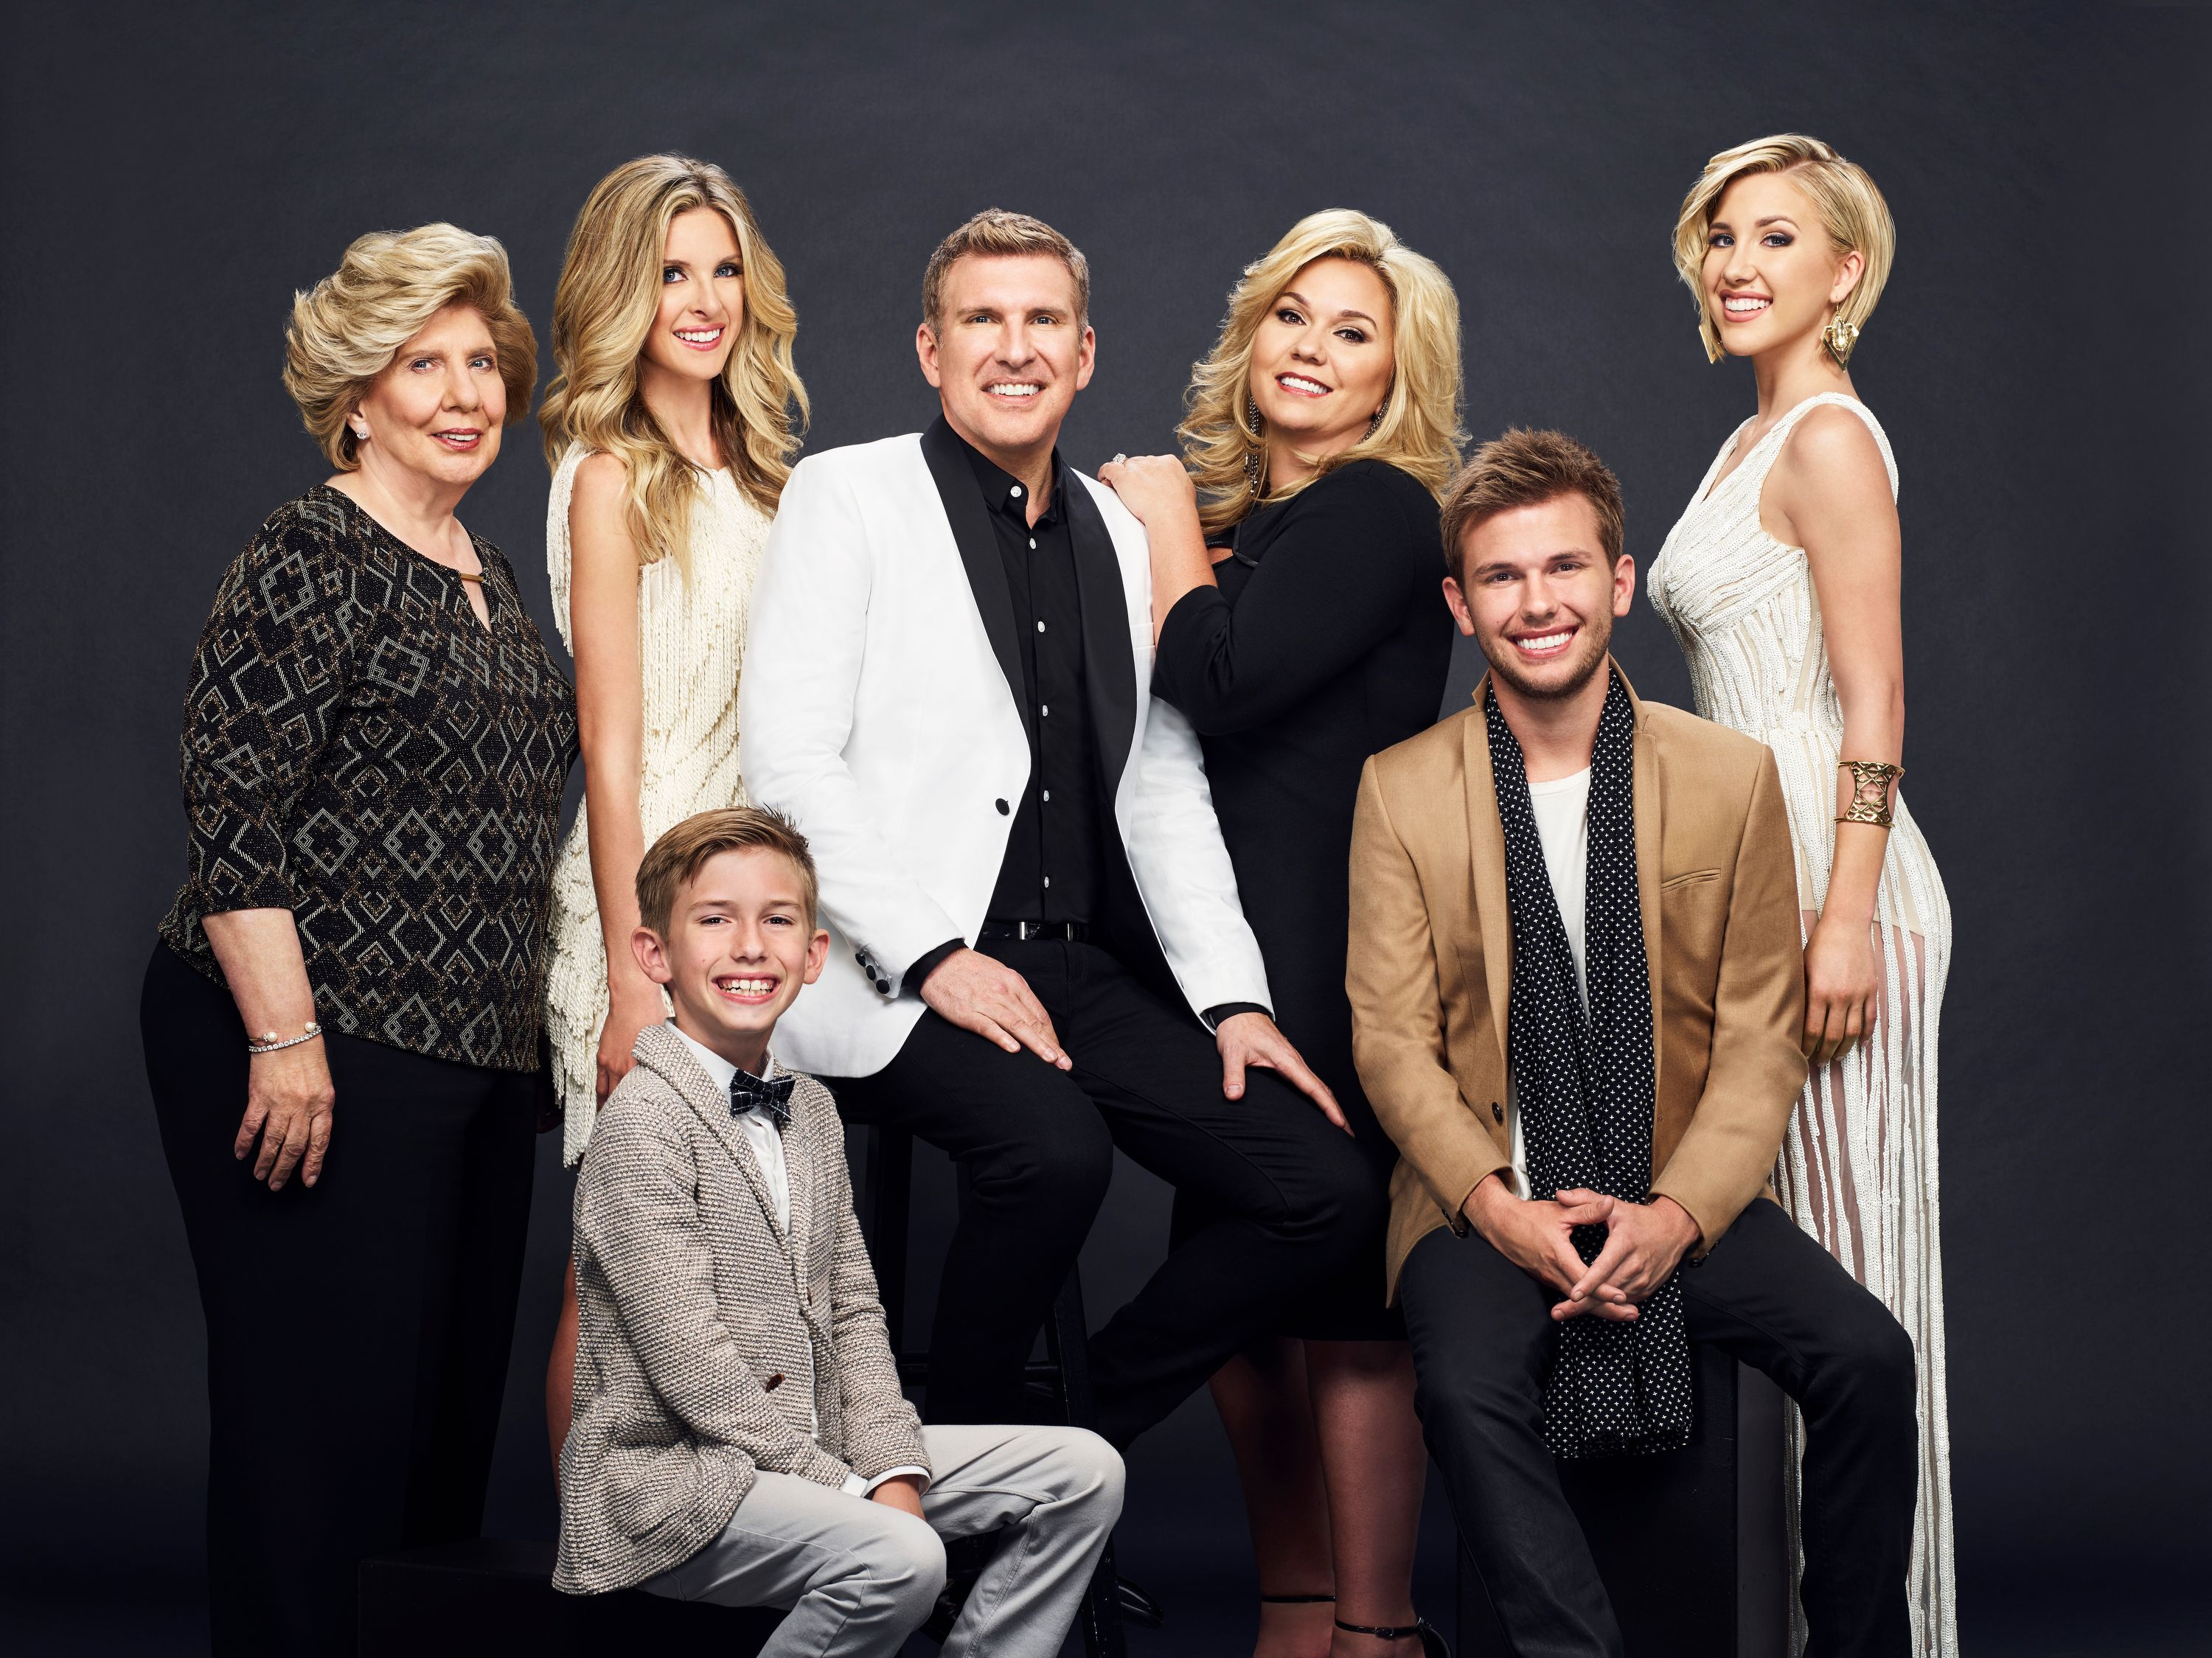 Faye Chrisley, Lindsie Chrisley Campbell, Grayson, Todd, Julie, Chase, and Savannah Chrisley on March 17, 2016 | Photo: Tommy Garcia/USA Network/NBCU Photo Bank/NBCUniversal/Getty Images